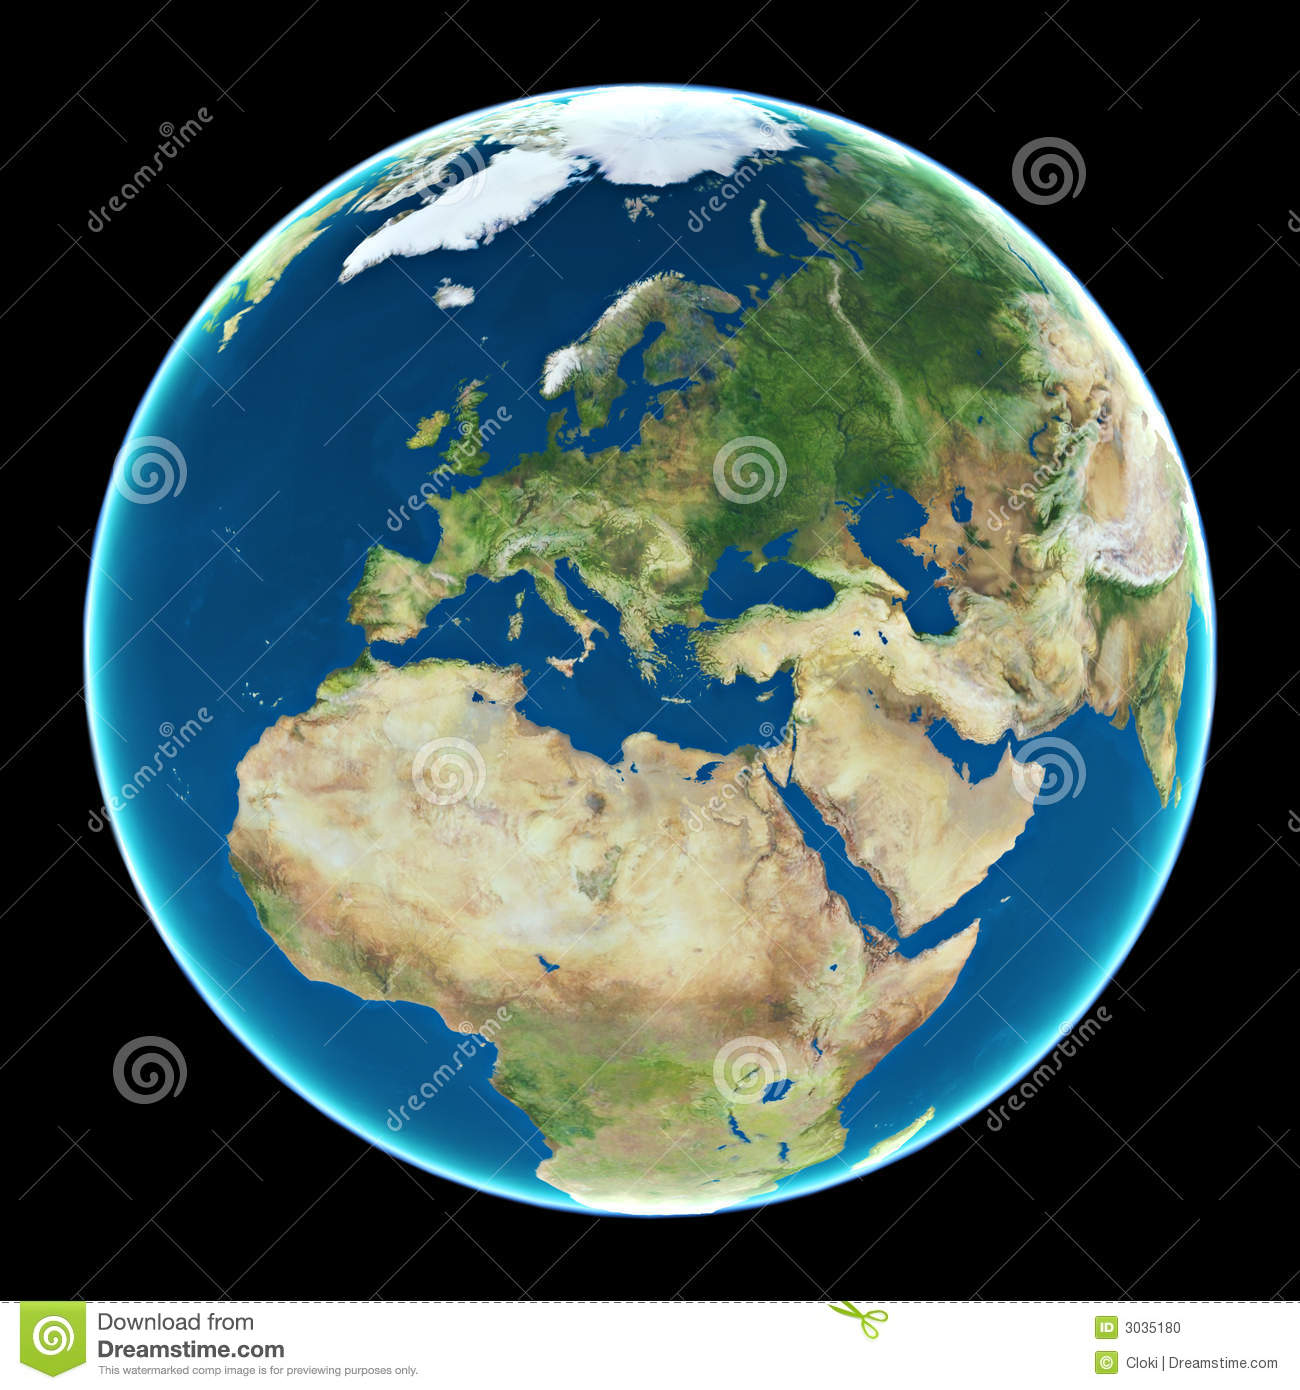 usa map states with Stock Photo Europe Pla  Earth Image3035180 on Pennsylvania Ski Resorts Map Poster additionally Algeria States Map moreover Stock Image Shame You Image7591751 additionally Cern together with Malasana Madrid Map.